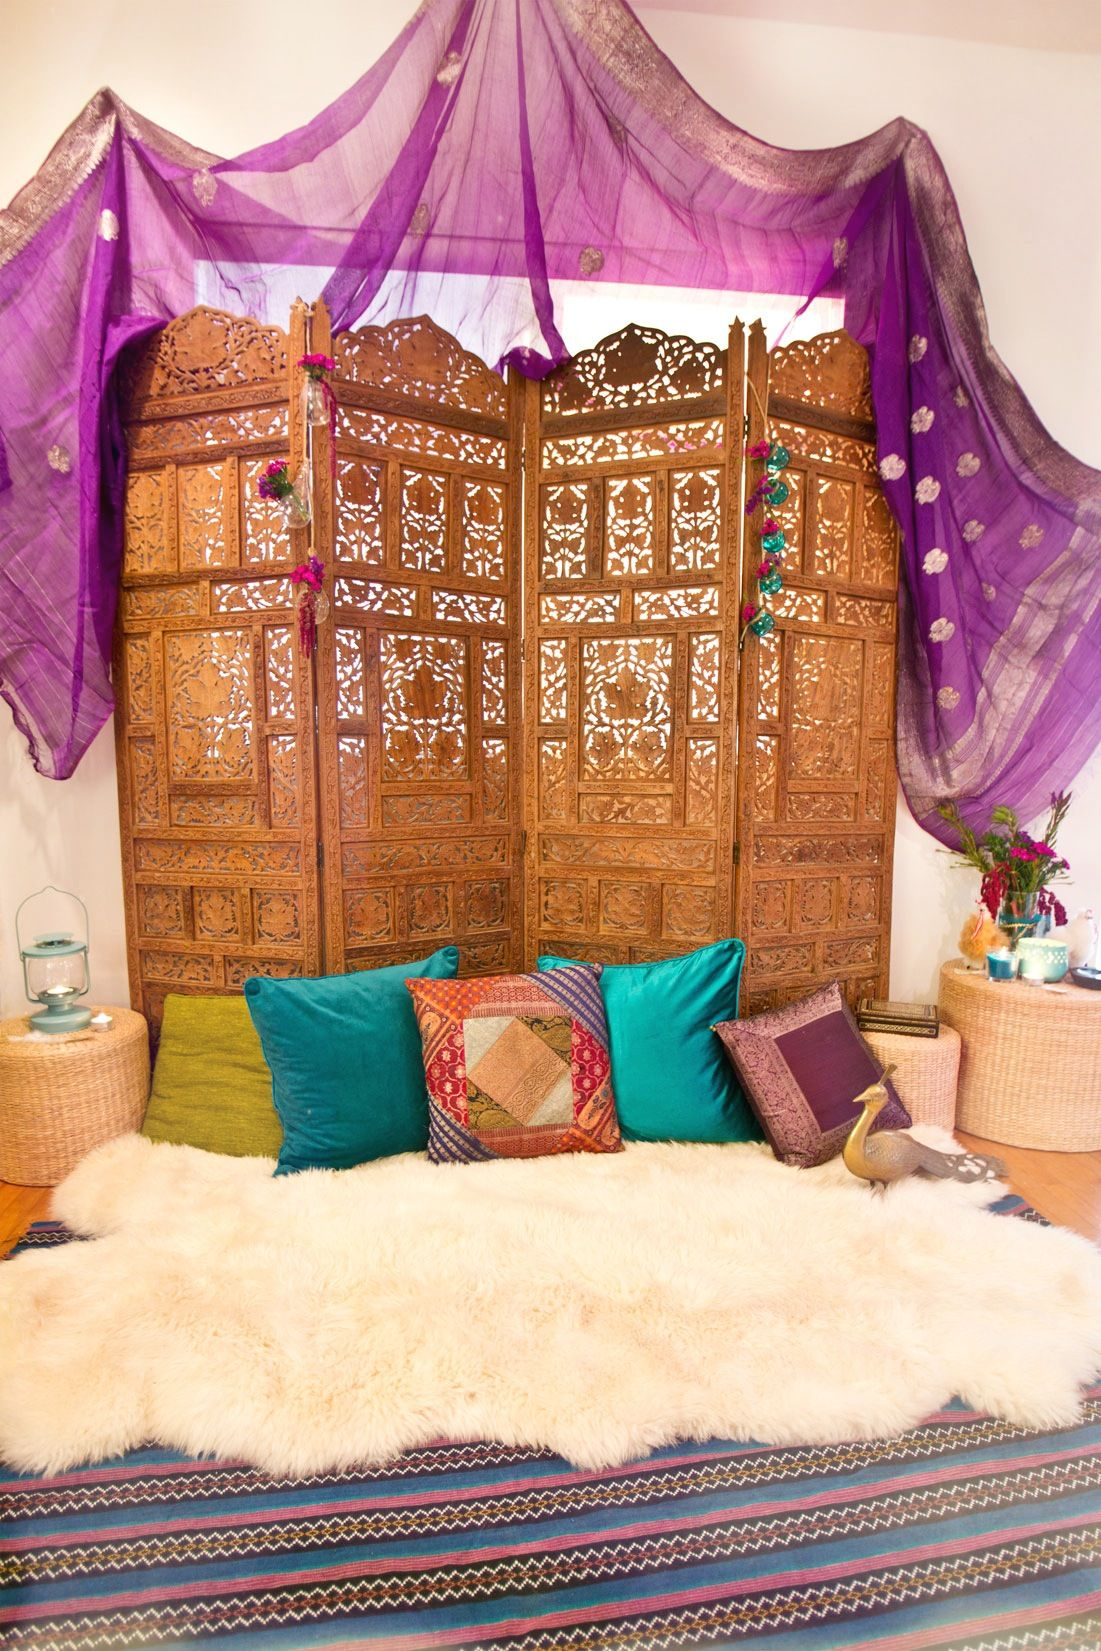 Bed canopy gypsy - Gypsy New Year S Dinner Party Diy Bohemian Styling By Msq